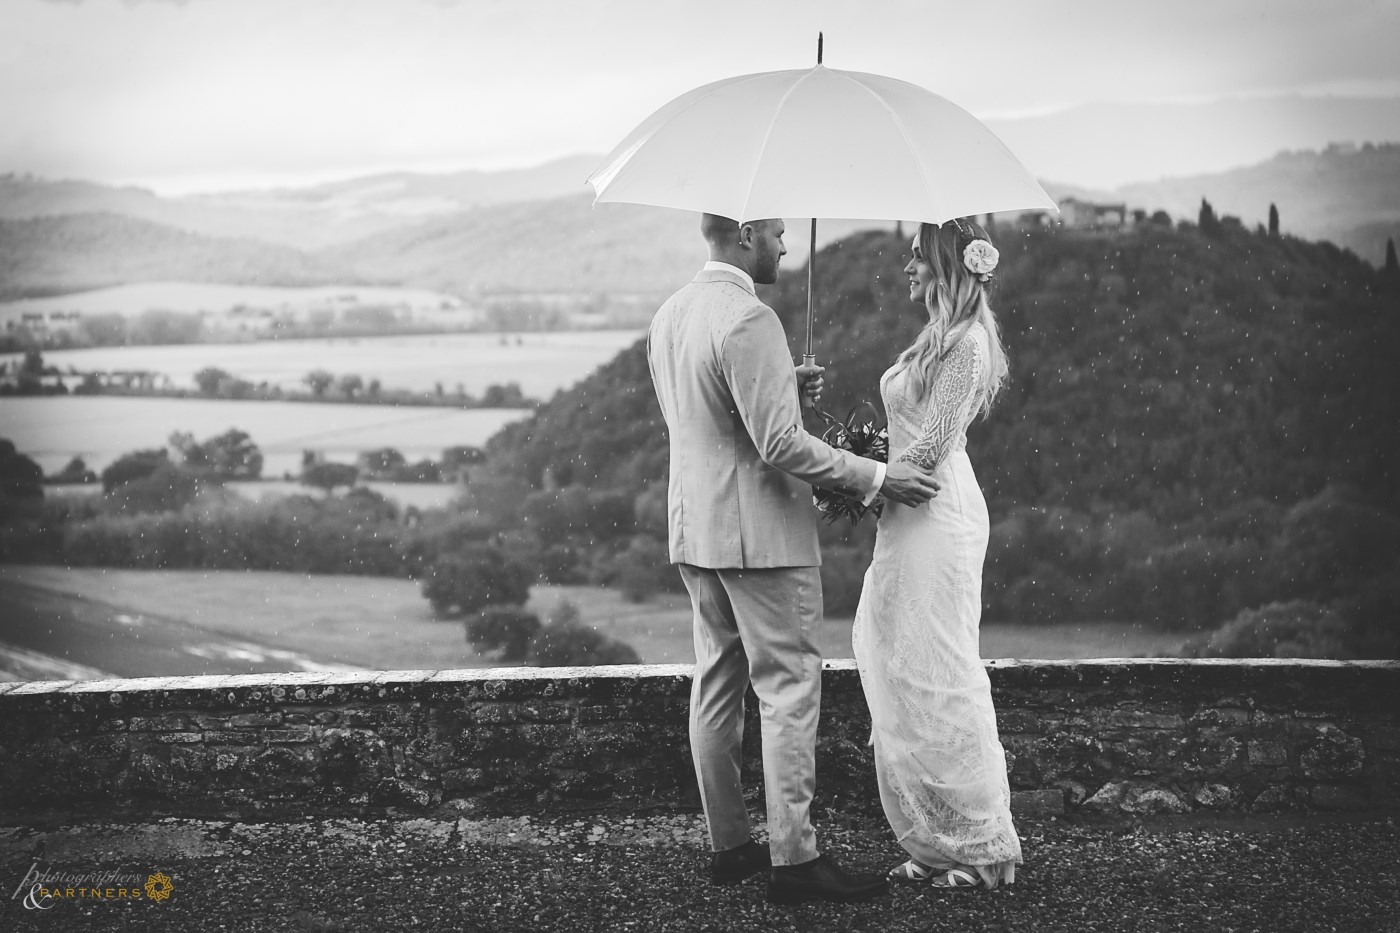 Even in the rain, the Tuscany is romantic.